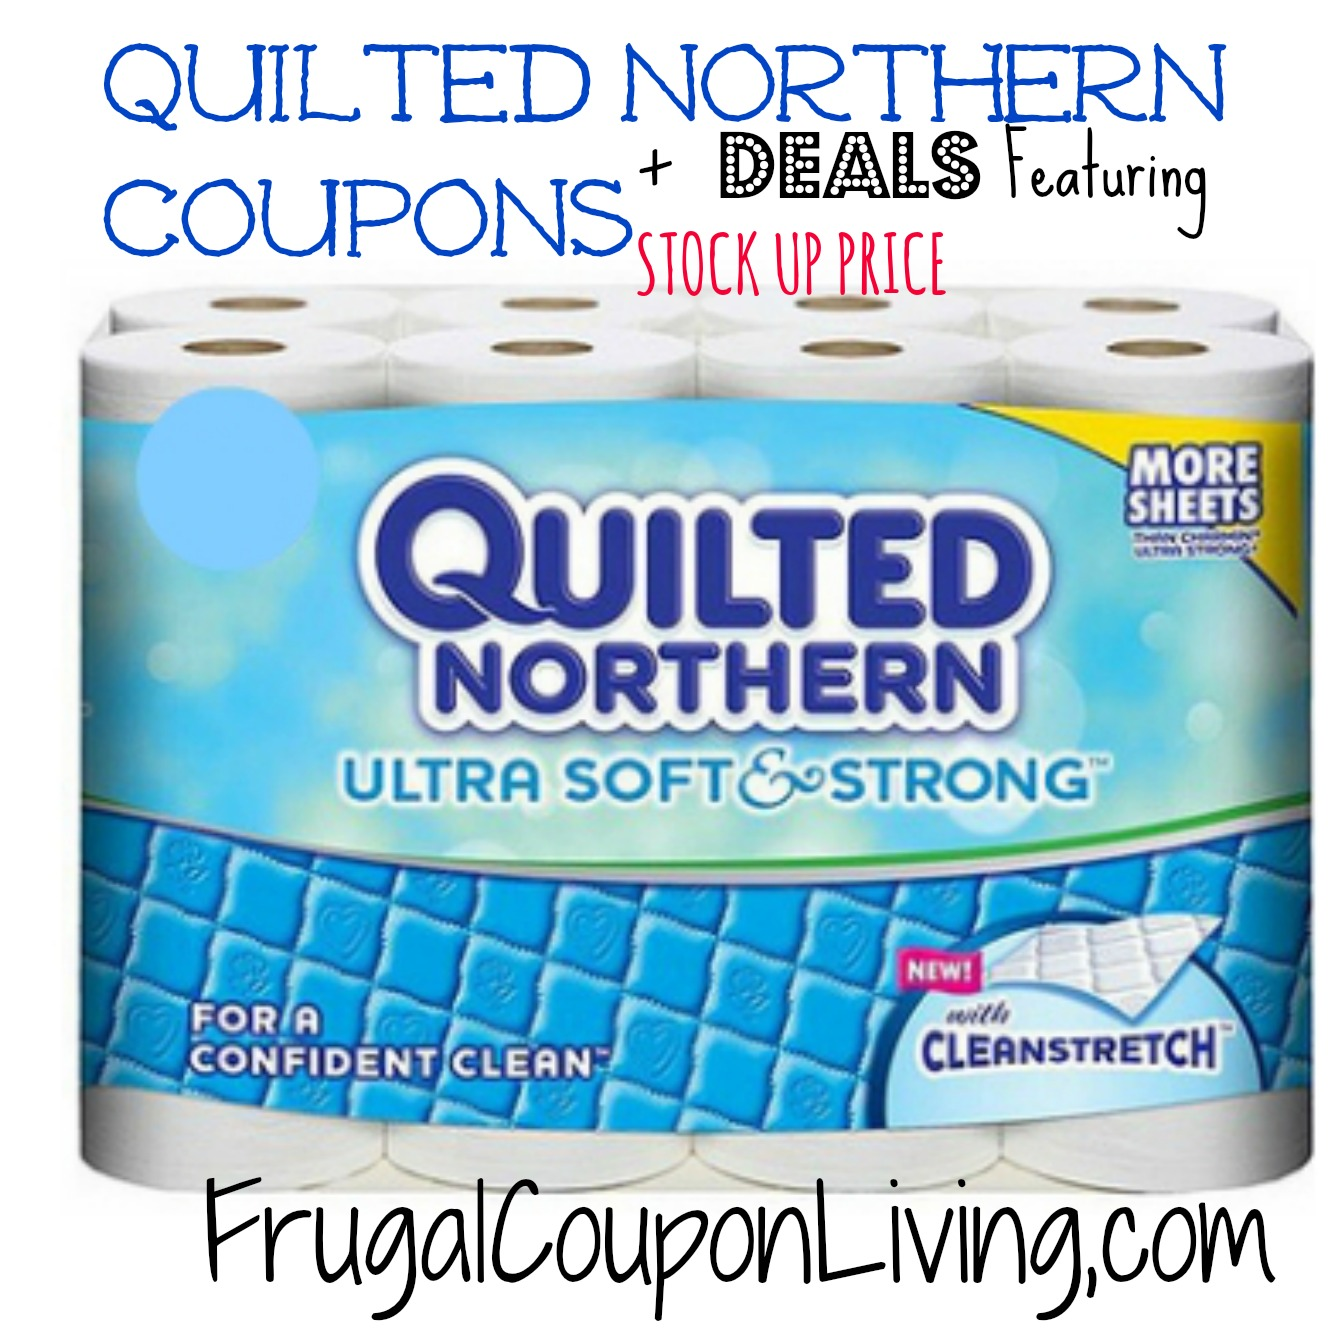 Northern tissue coupons printable